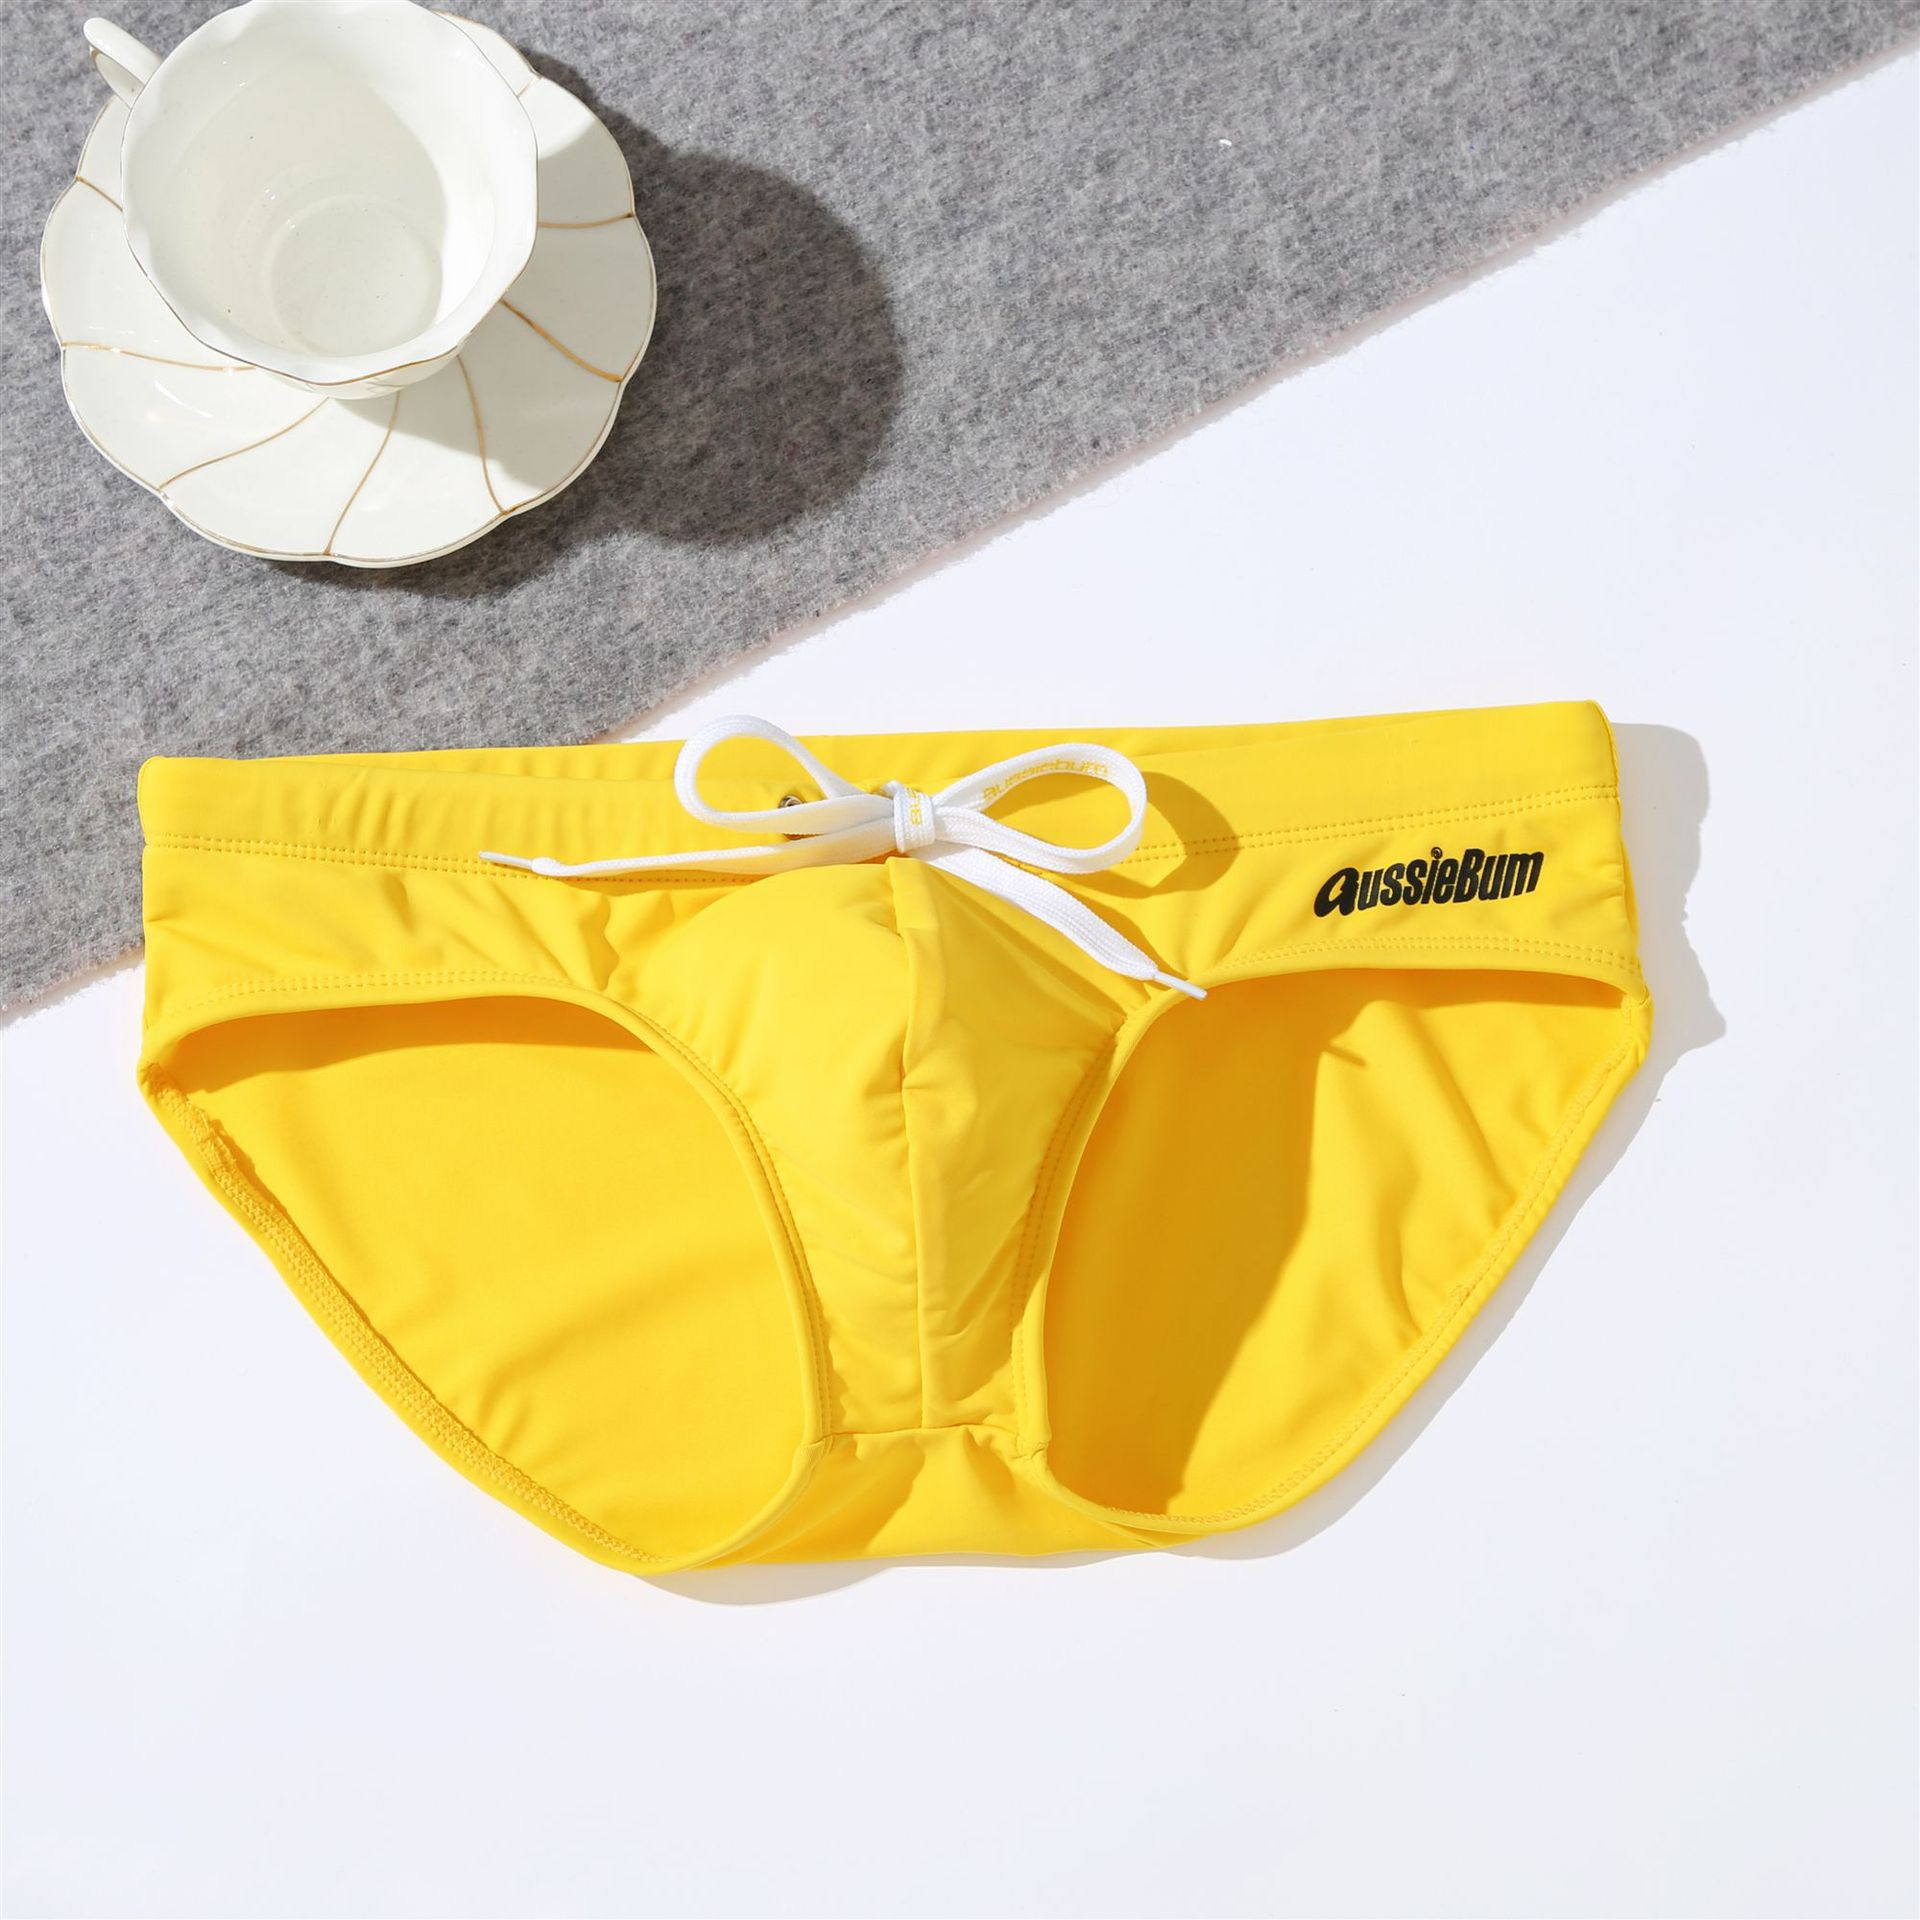 Aussiebum men's low-waisted elastic comfort solid color trend sexy youth triangle swimming trunks 2